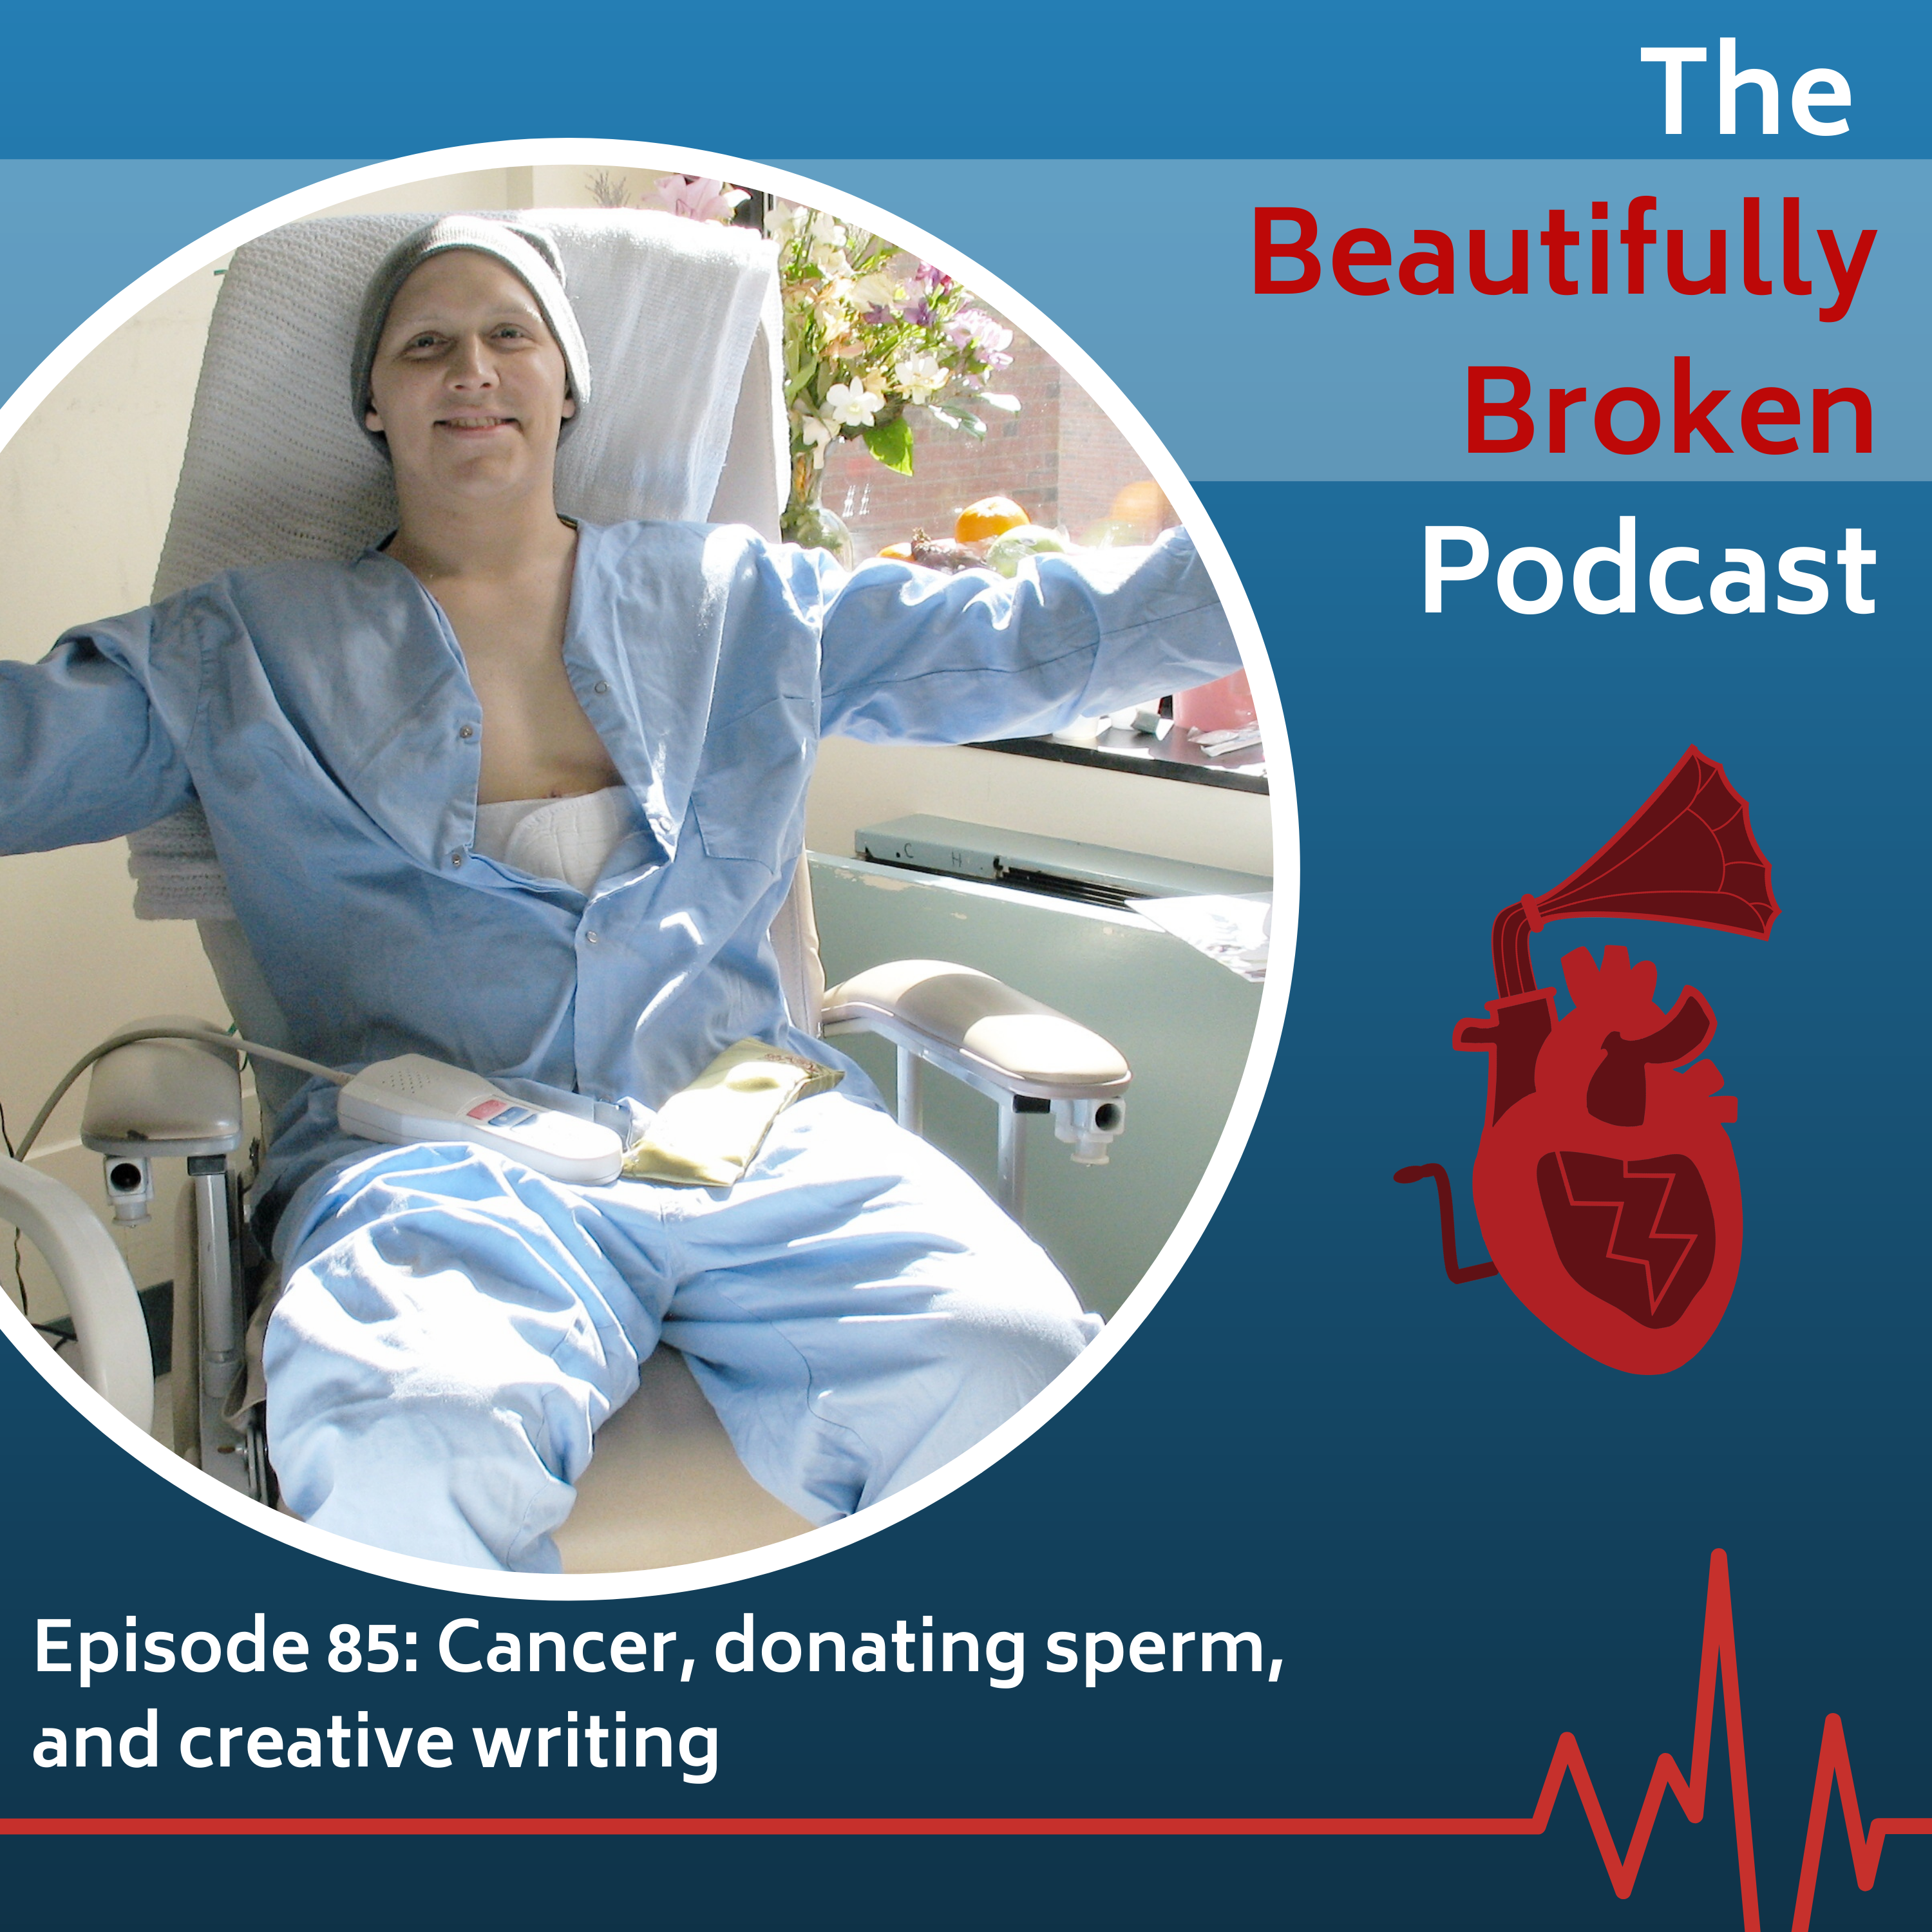 Freddie Kimmel Cancer, Donating Sperm and Creative writing - Beautifully Broken Podcast